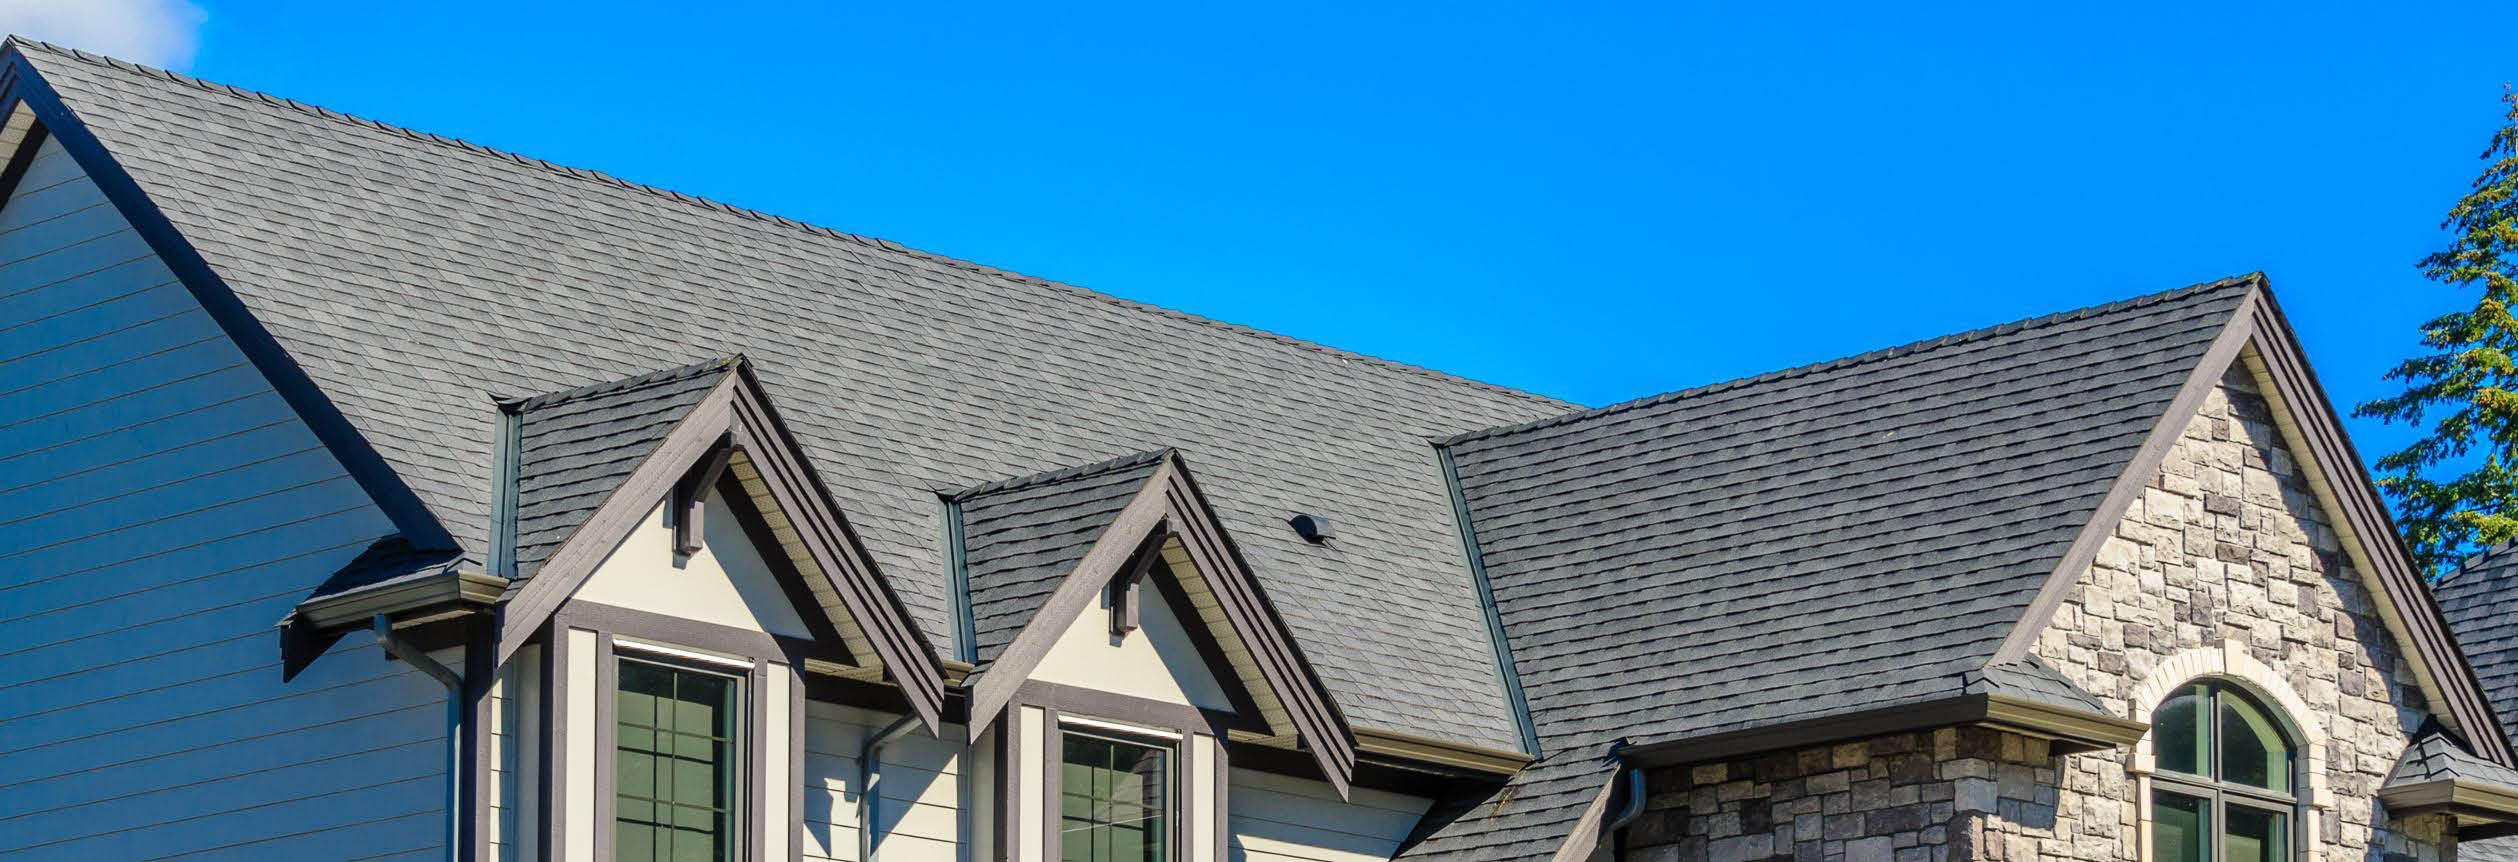 Roofing Repair and Roof Replacement